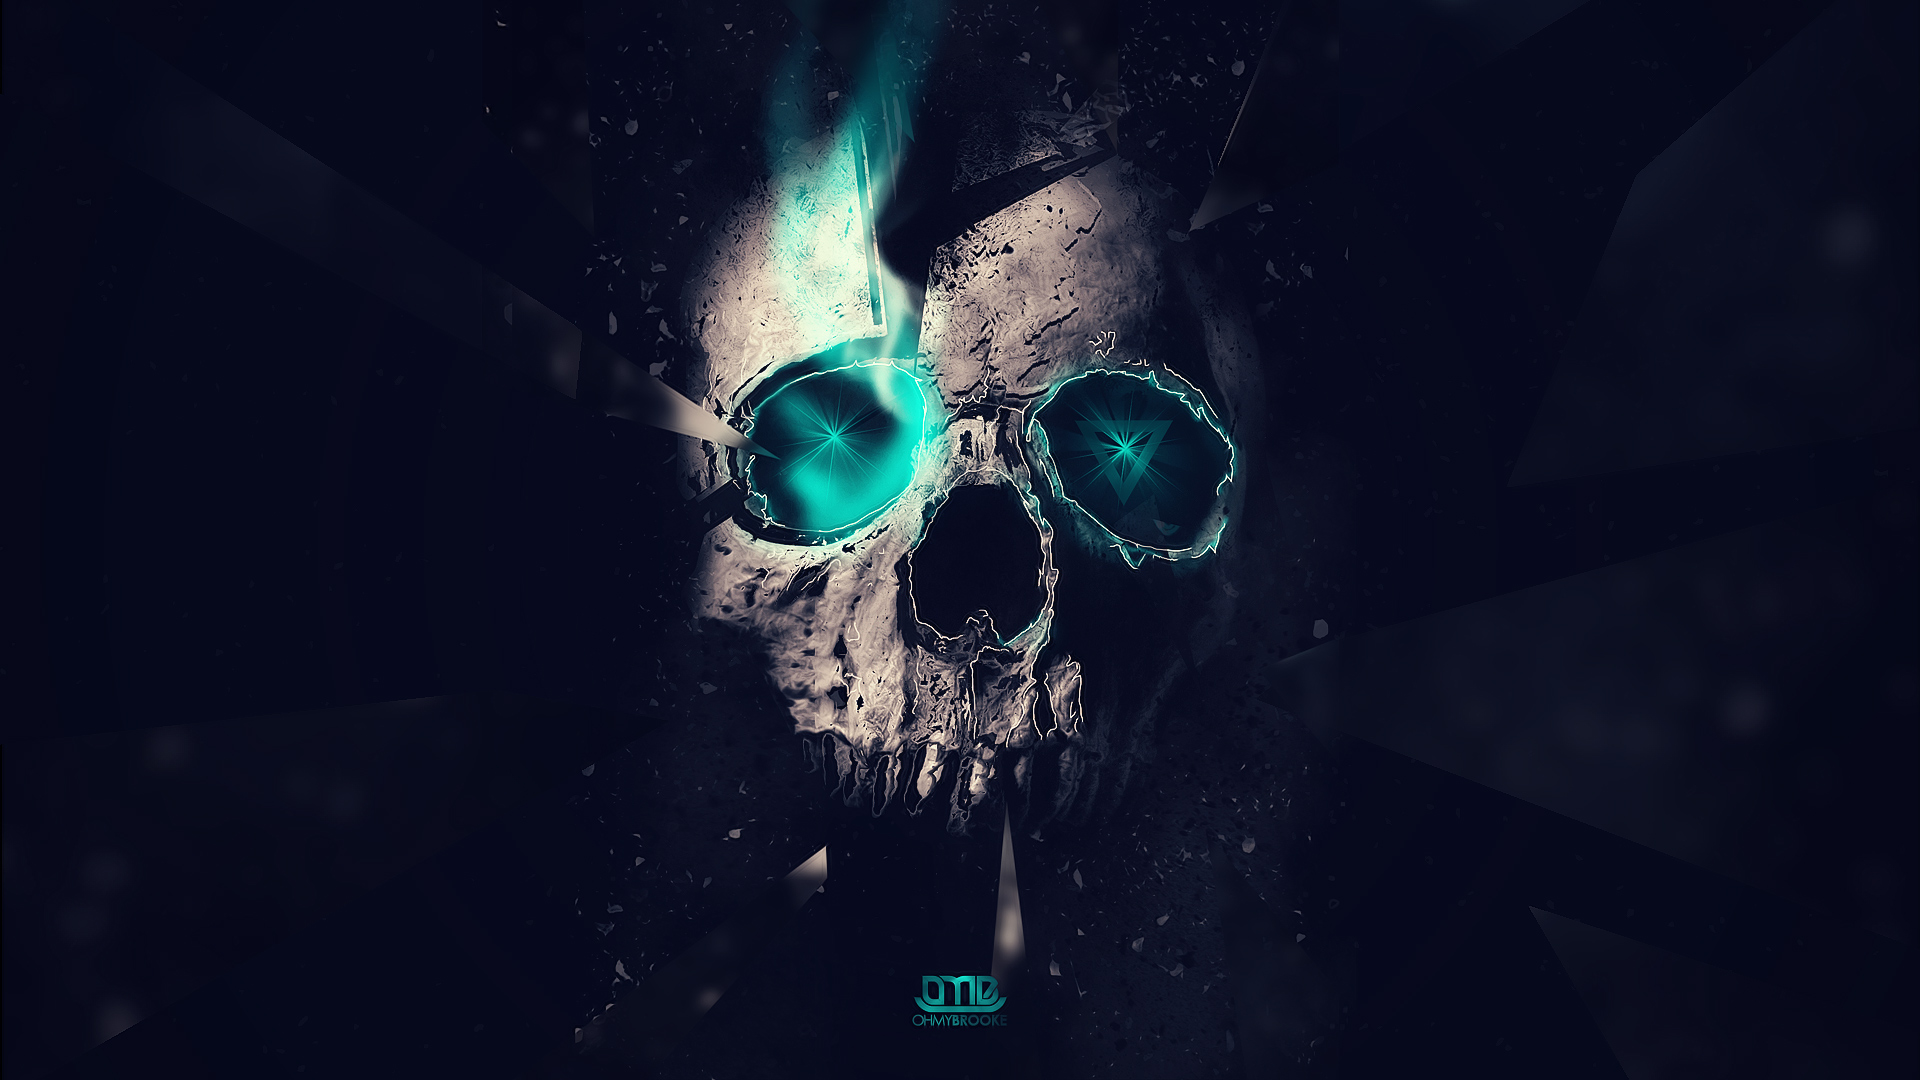 Skull Wallpapers PC Android iPhone and iPad Wallpapers and Pictures 1920x1080